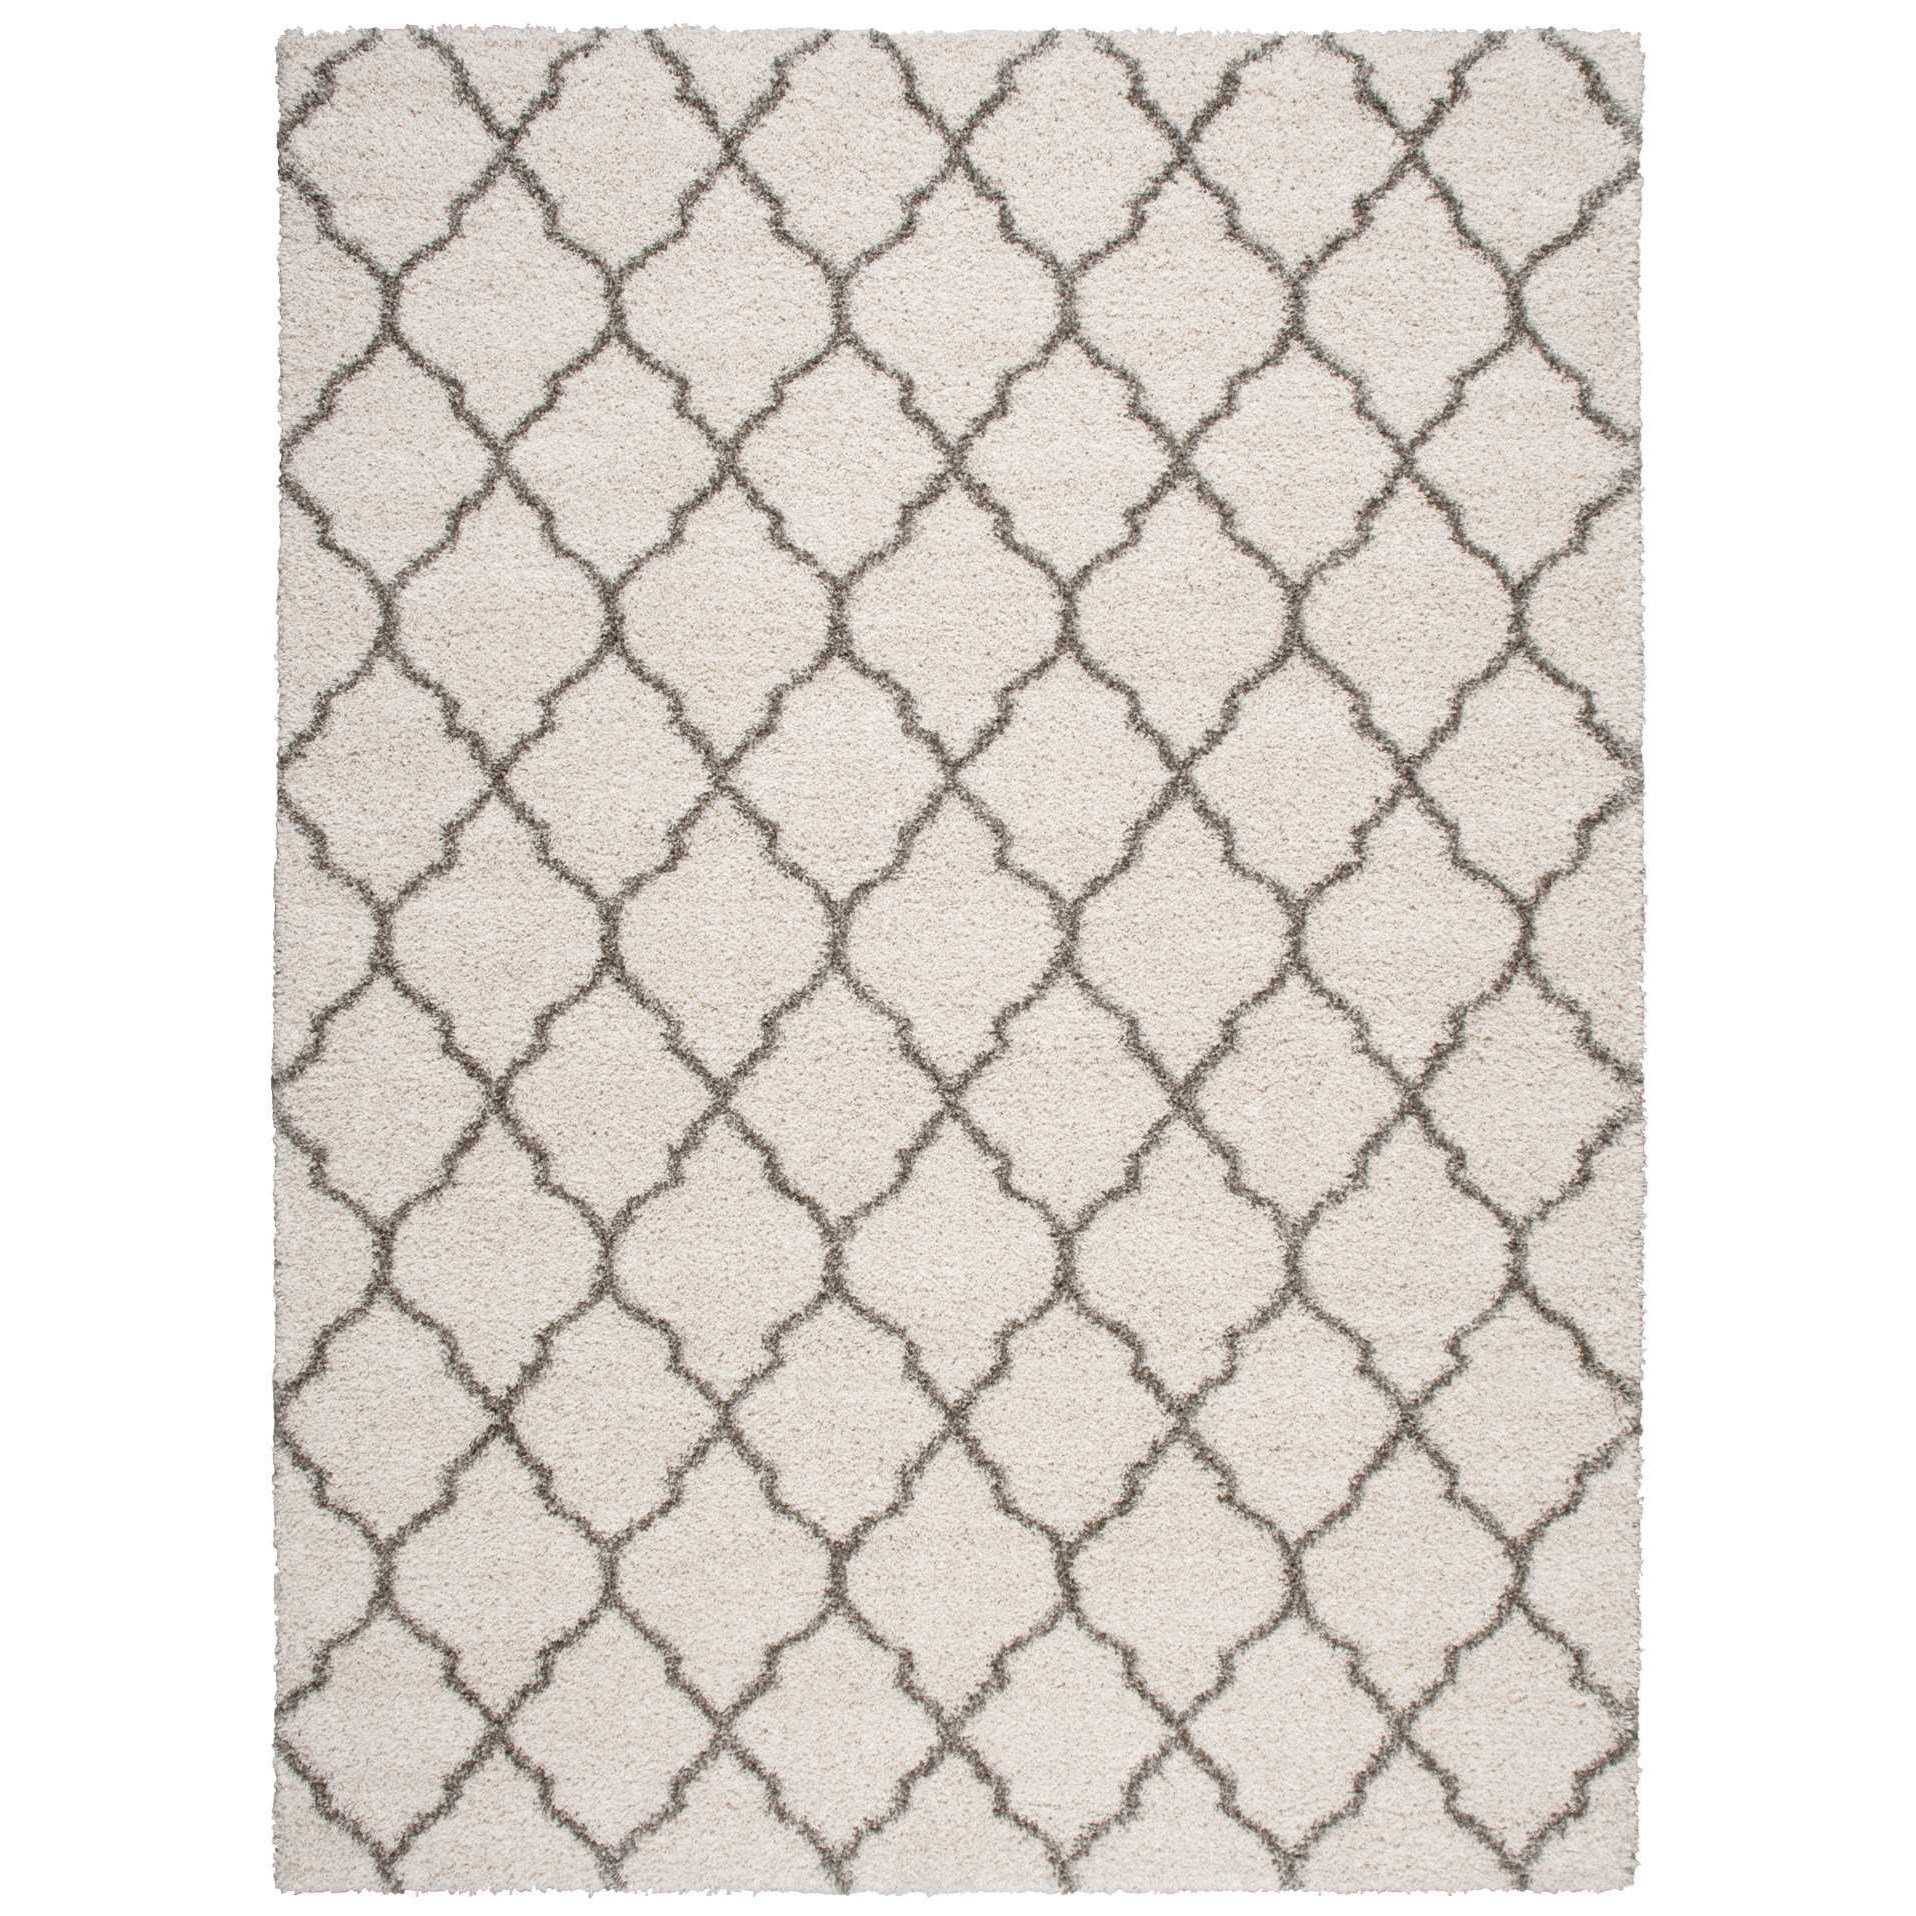 Amore 10' x 13' Cream Rectangle Rug by Nourison at Home Collections Furniture